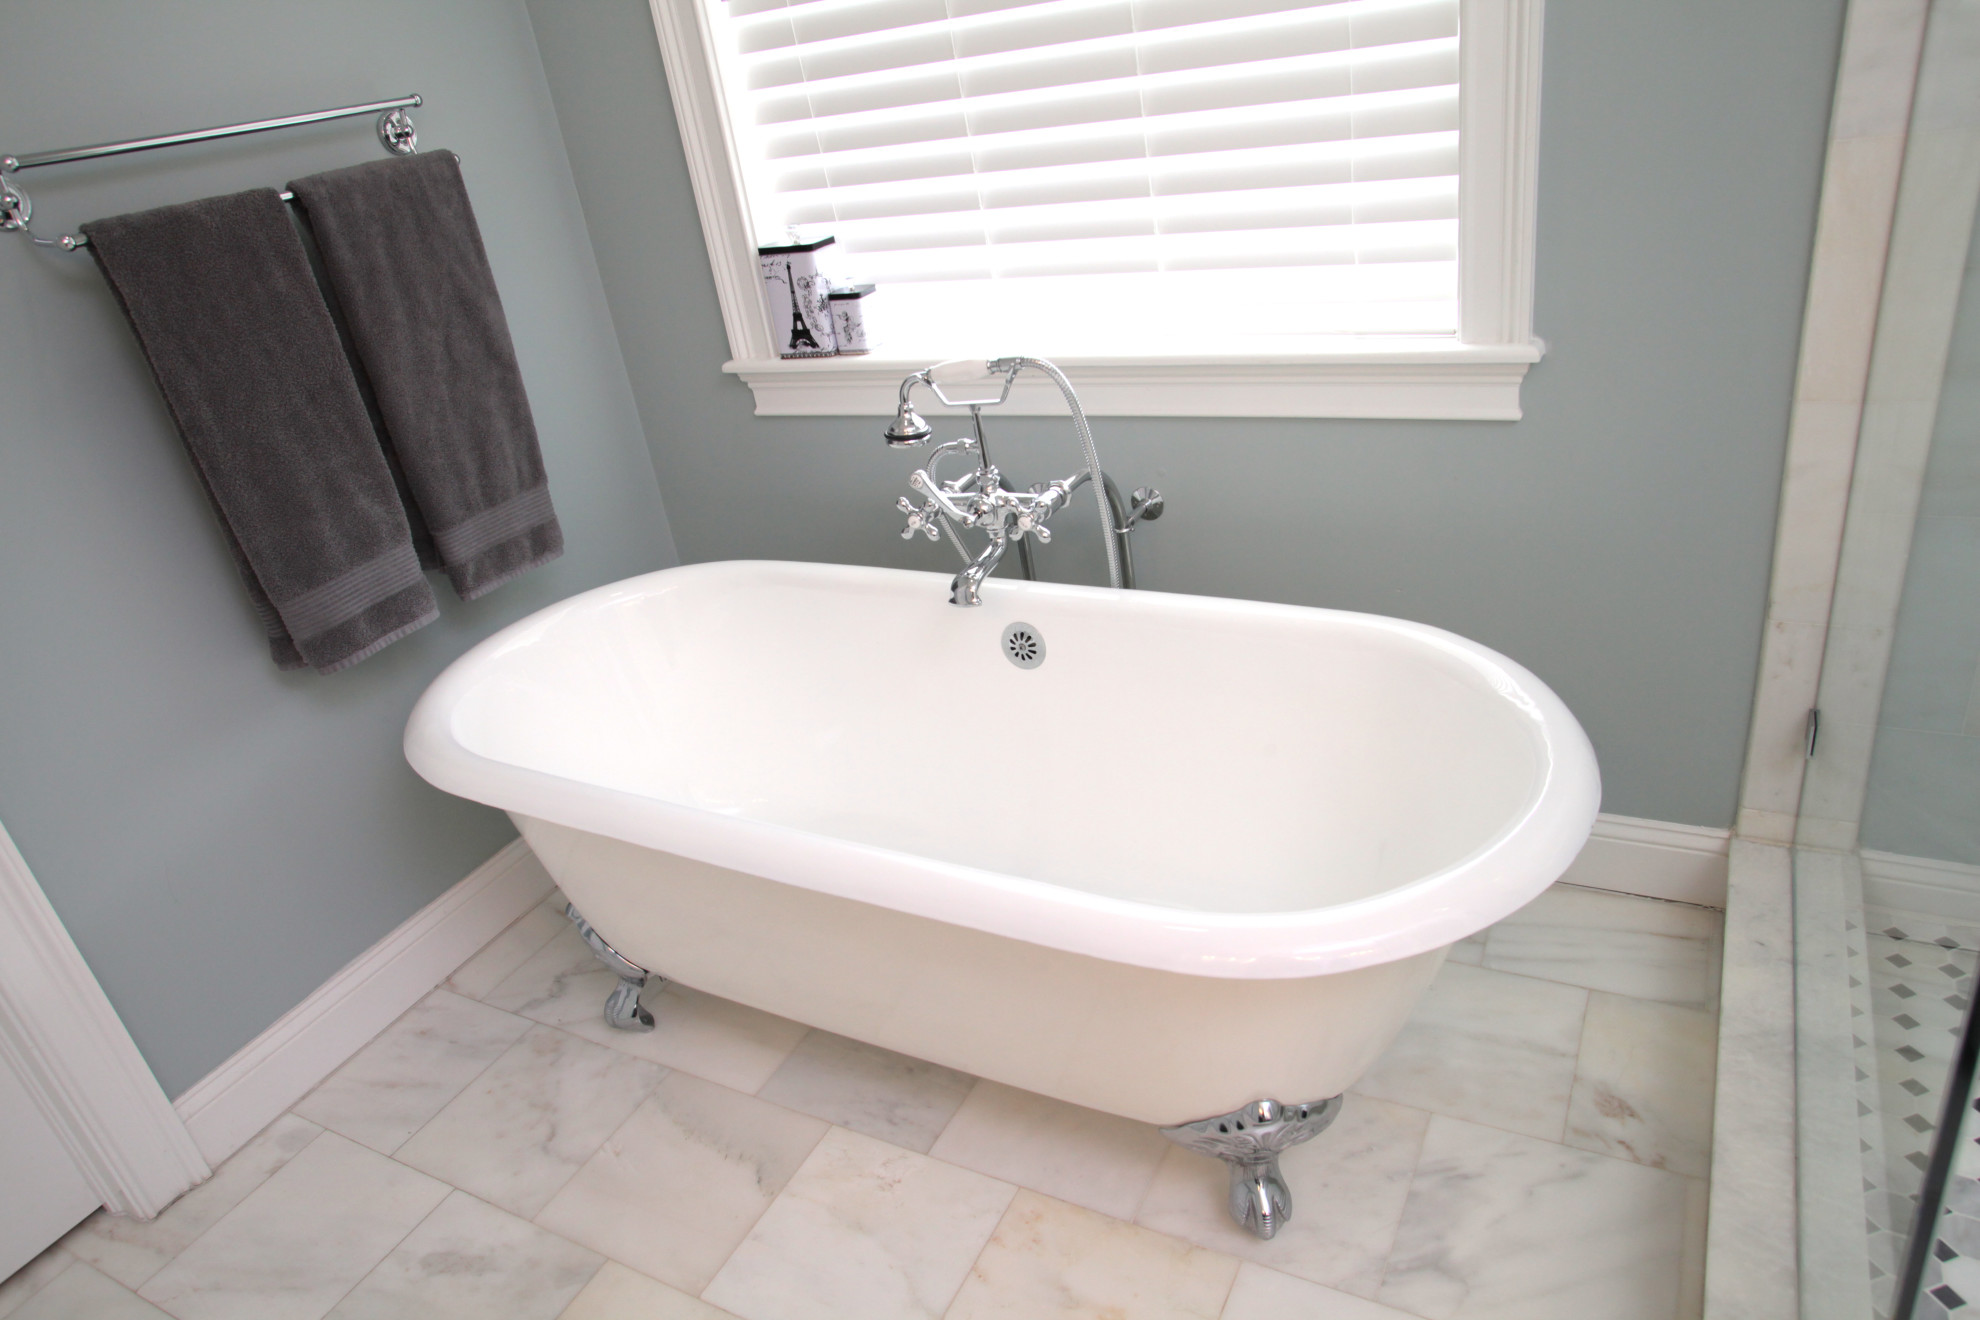 Melrose canal home- clawfoot tub